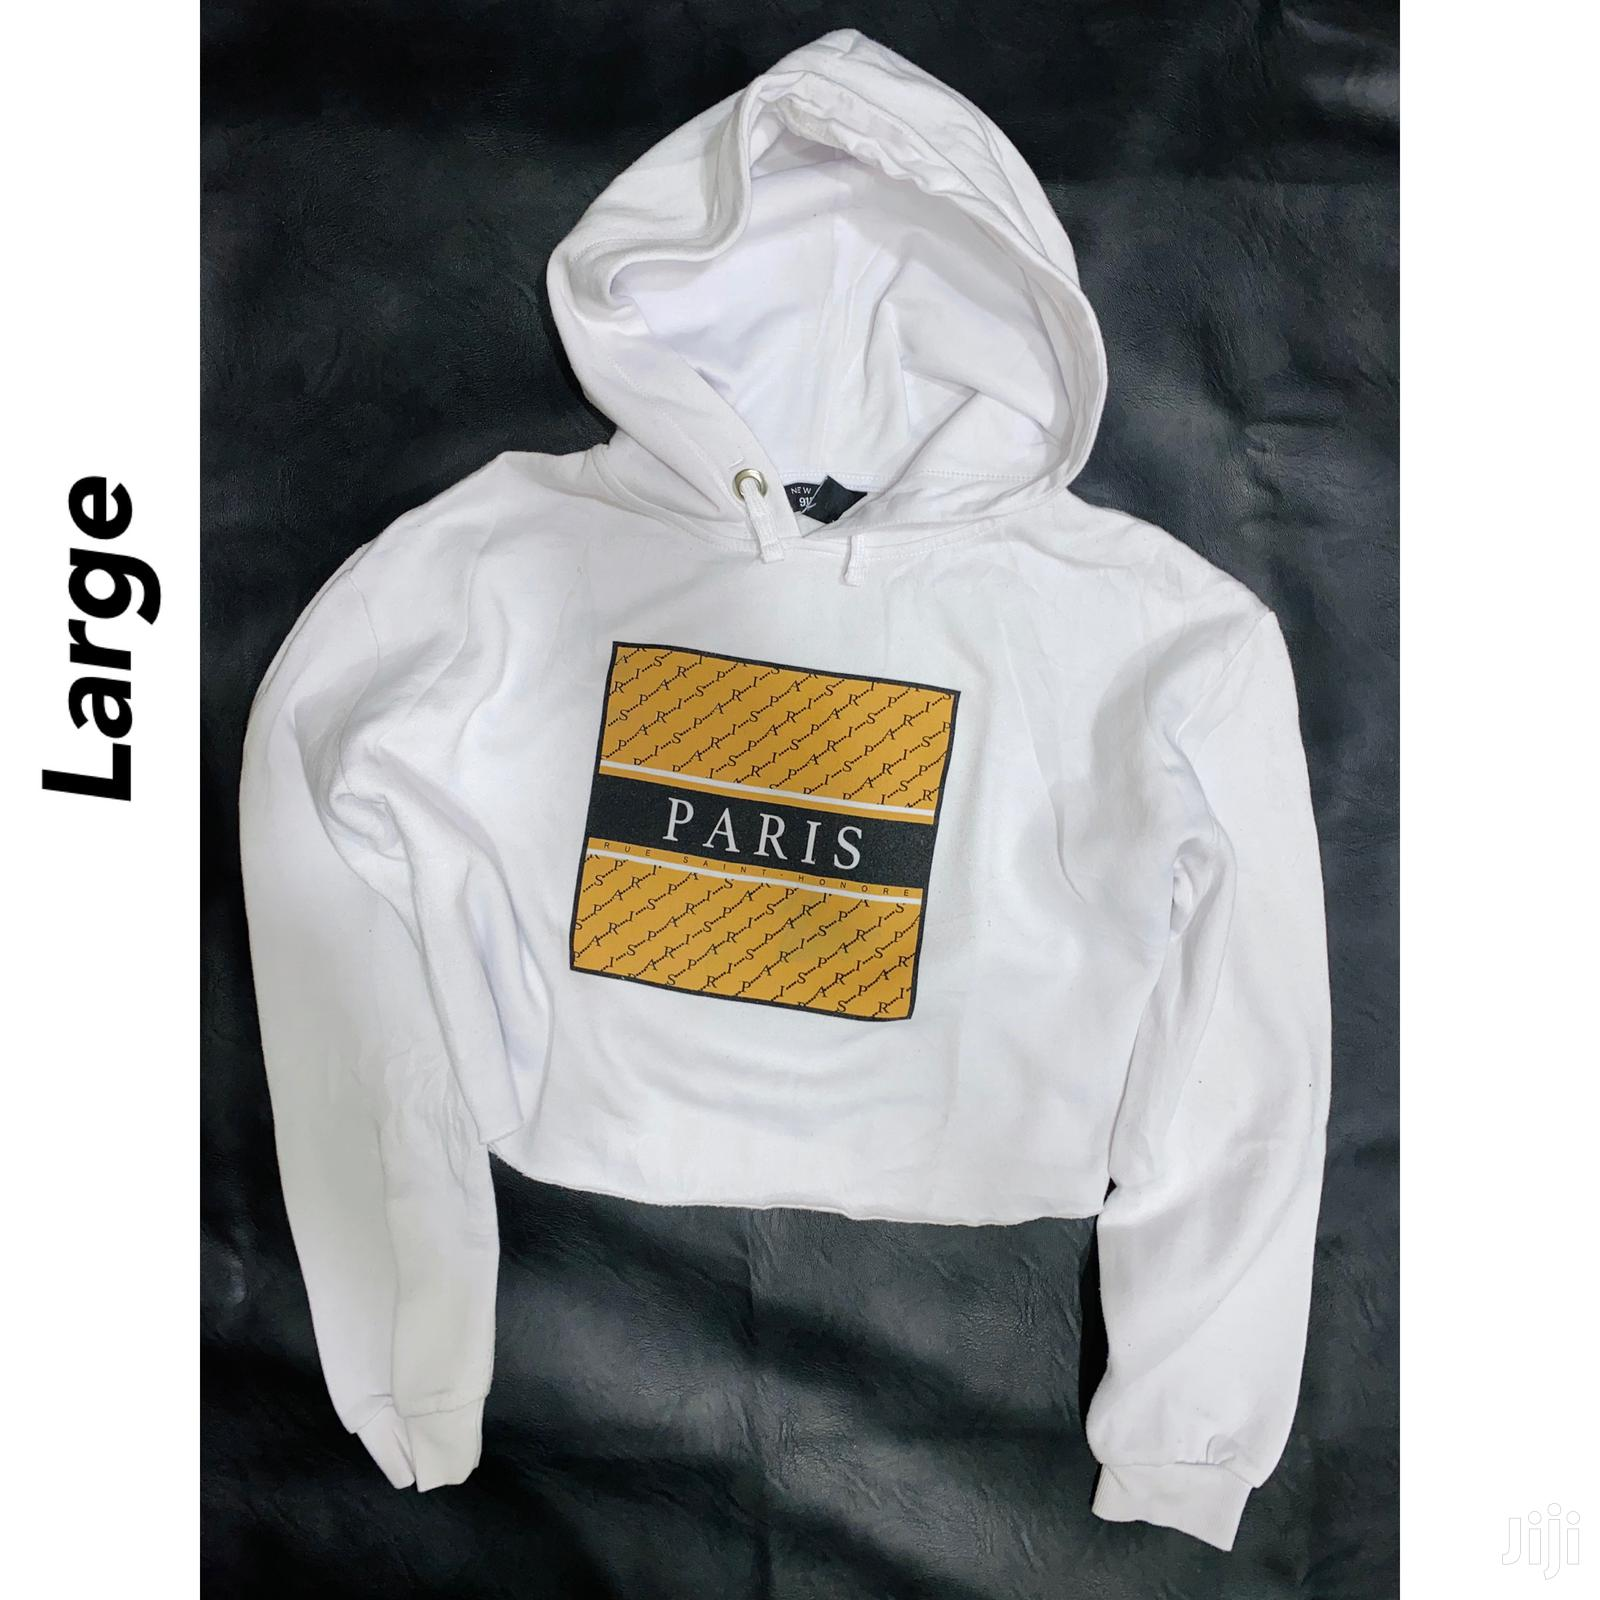 Archive: Crop Top Hoodies (Crop Hoodies) Available in All Sizes